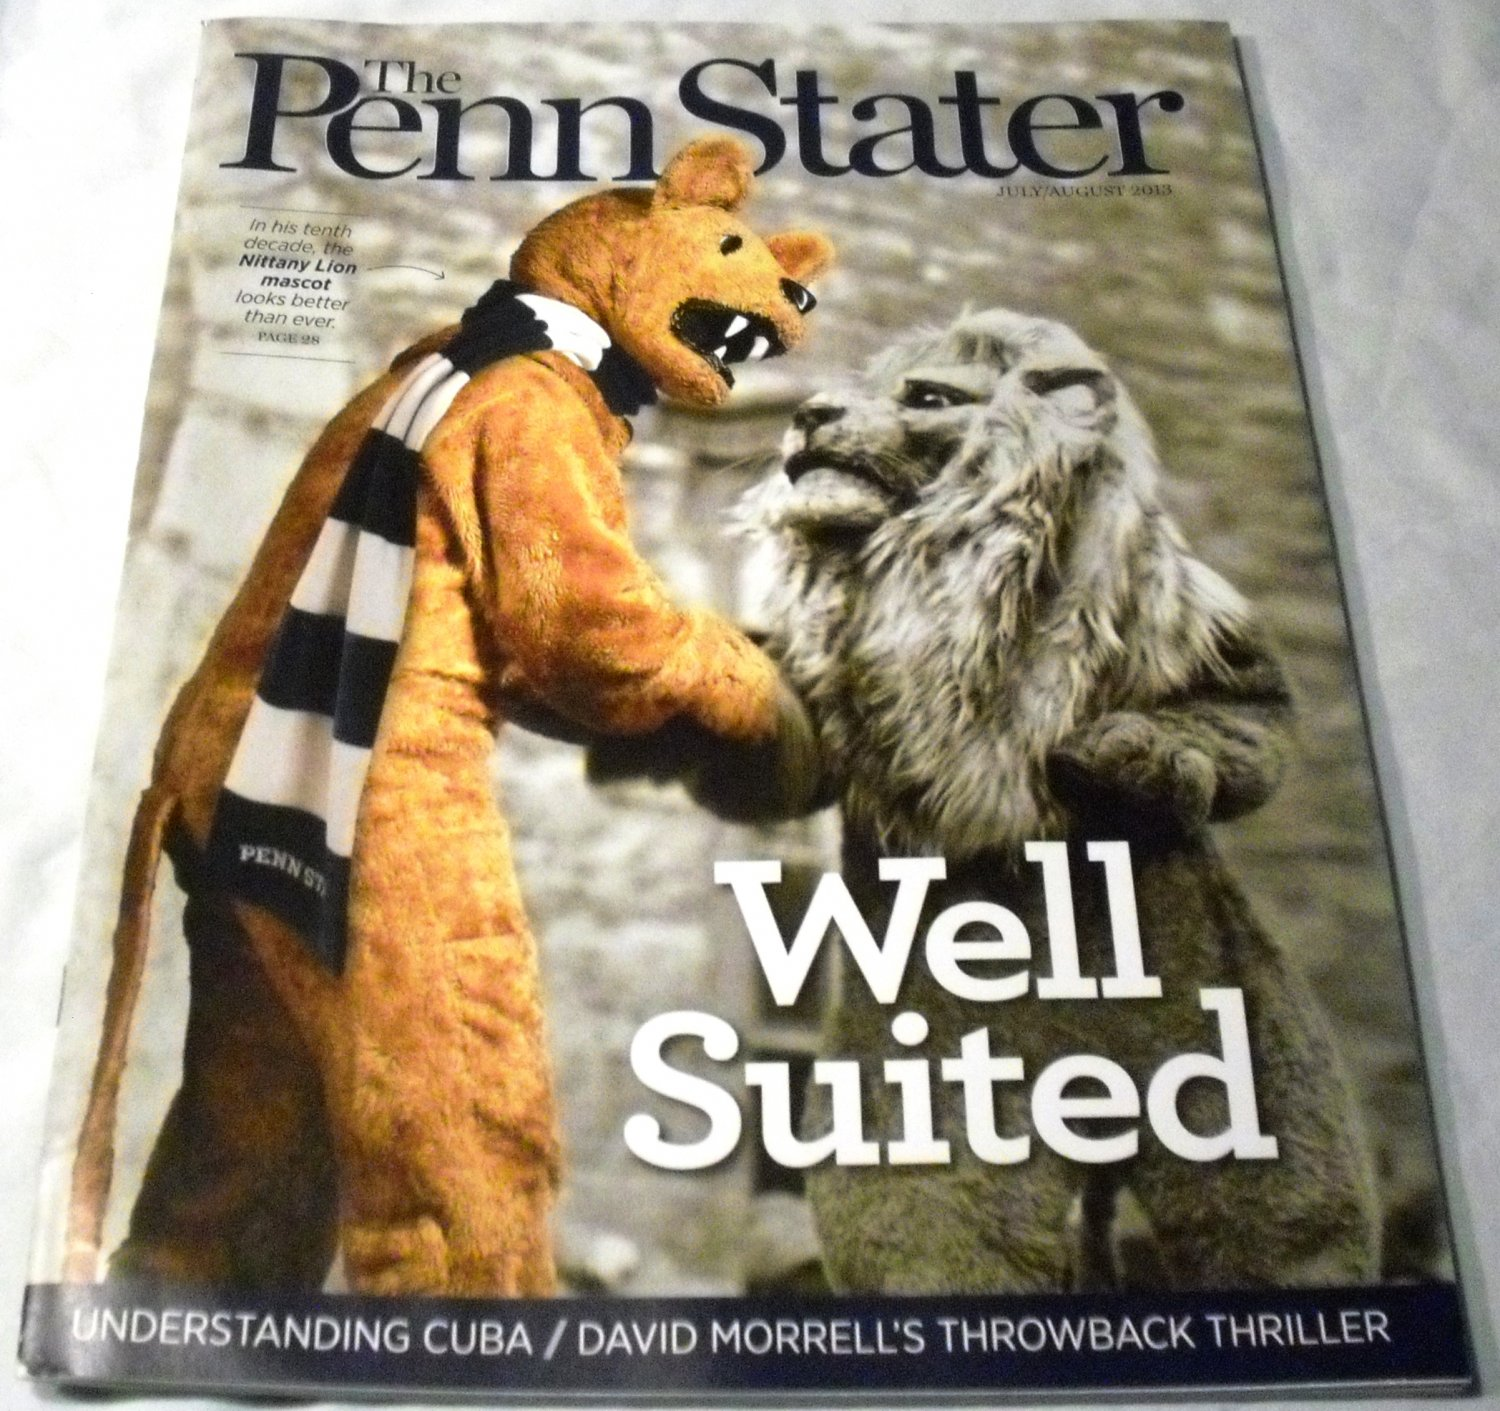 The Penn Stater Magazine July/August 2013